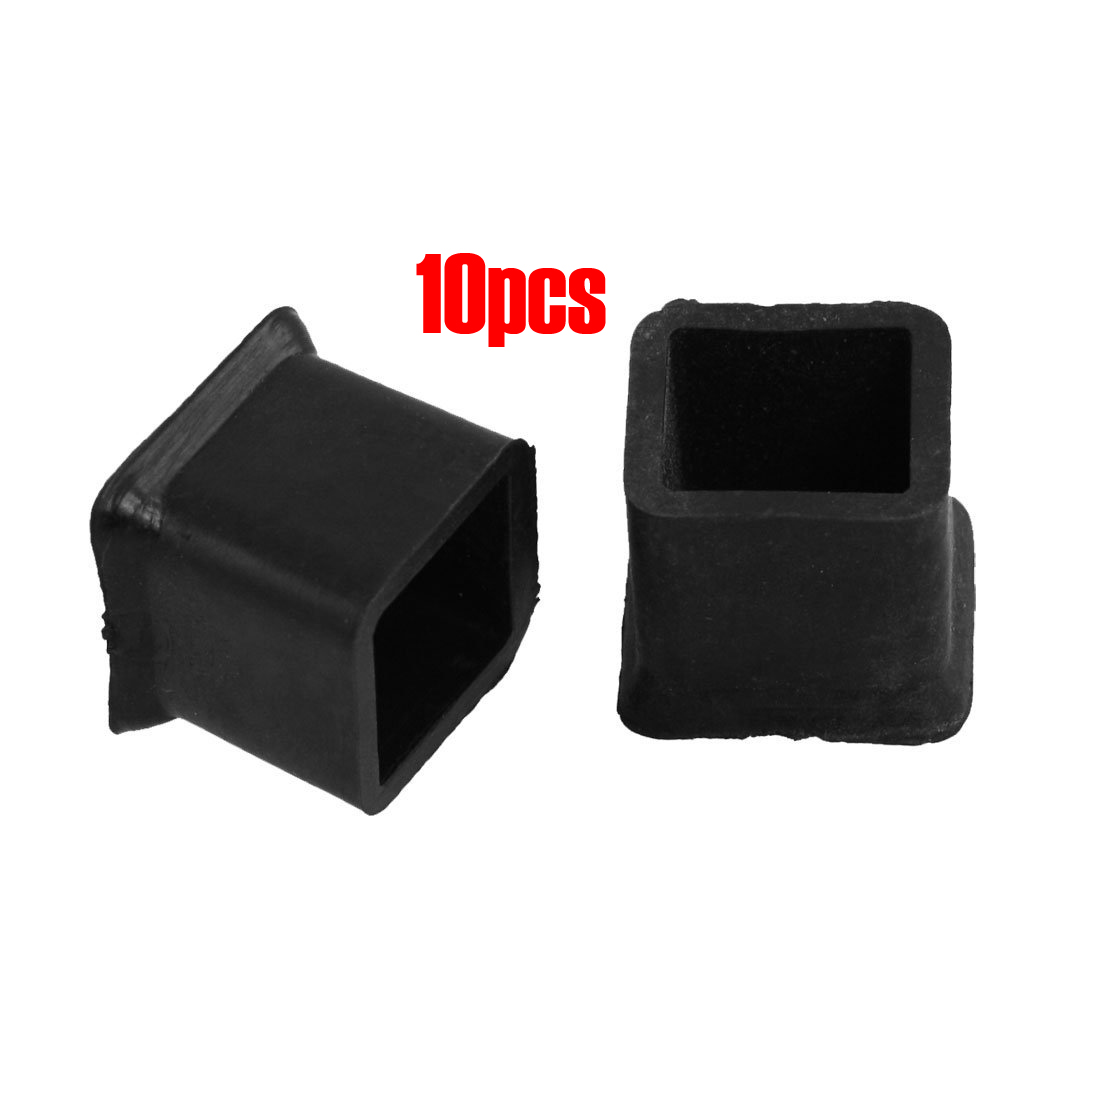 Promotion! 10 Pcs Furniture Chair Table Leg Rubber Foot Covers Protectors 20mm X 20mm Black